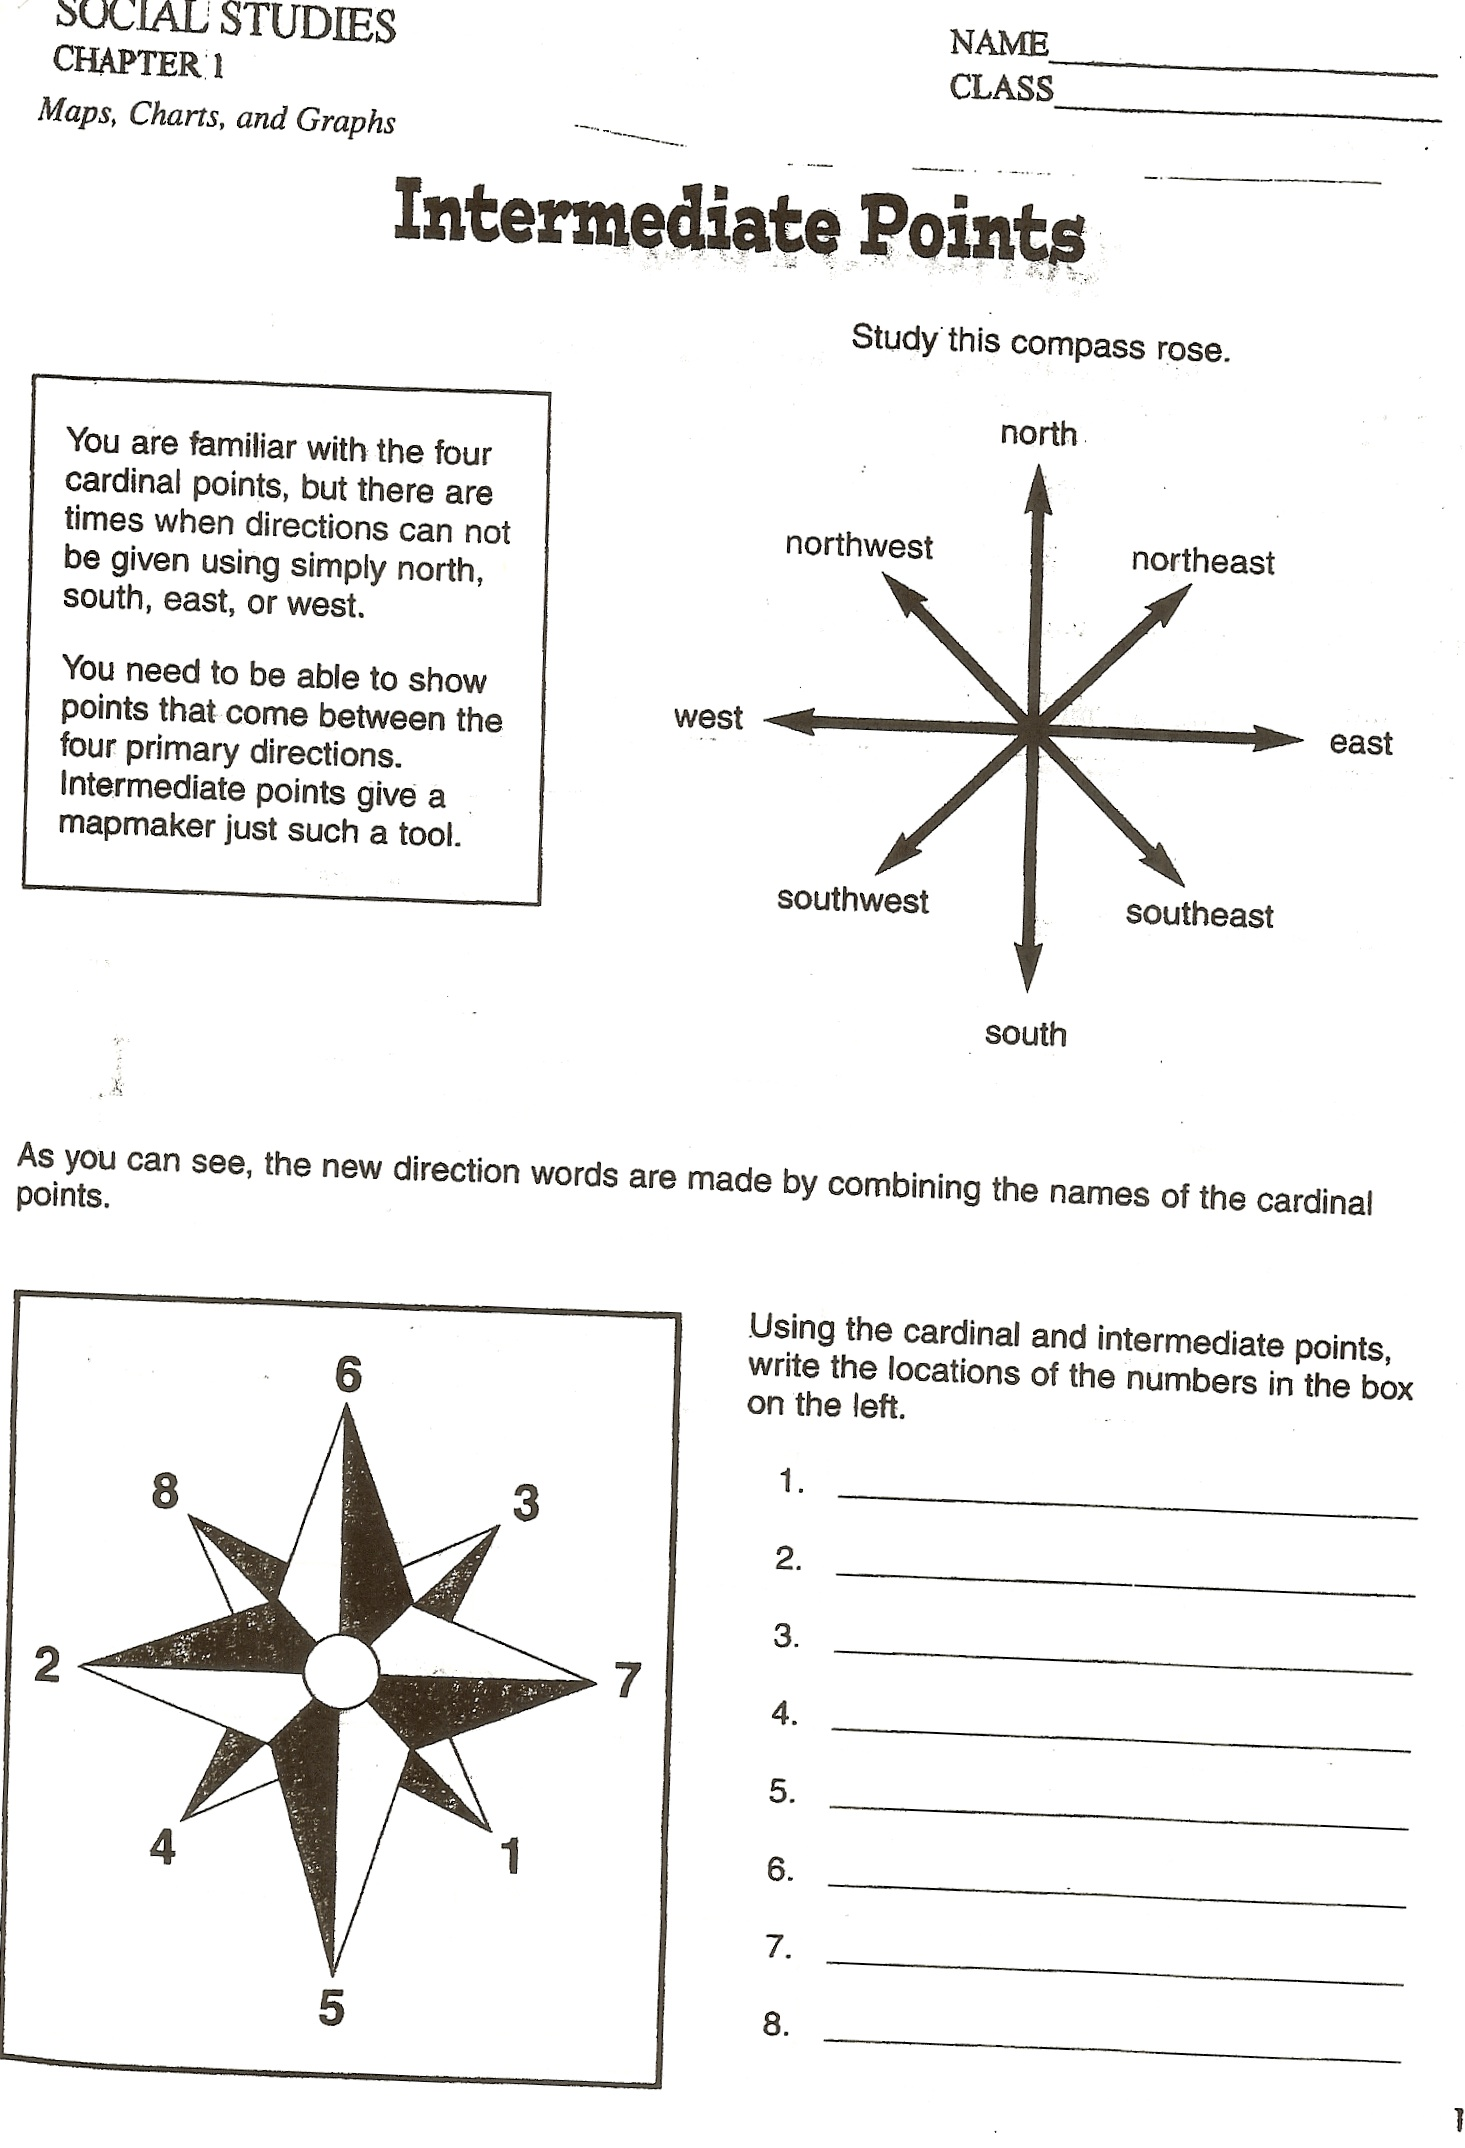 Geography Worksheet New 378 Geography Map Directions